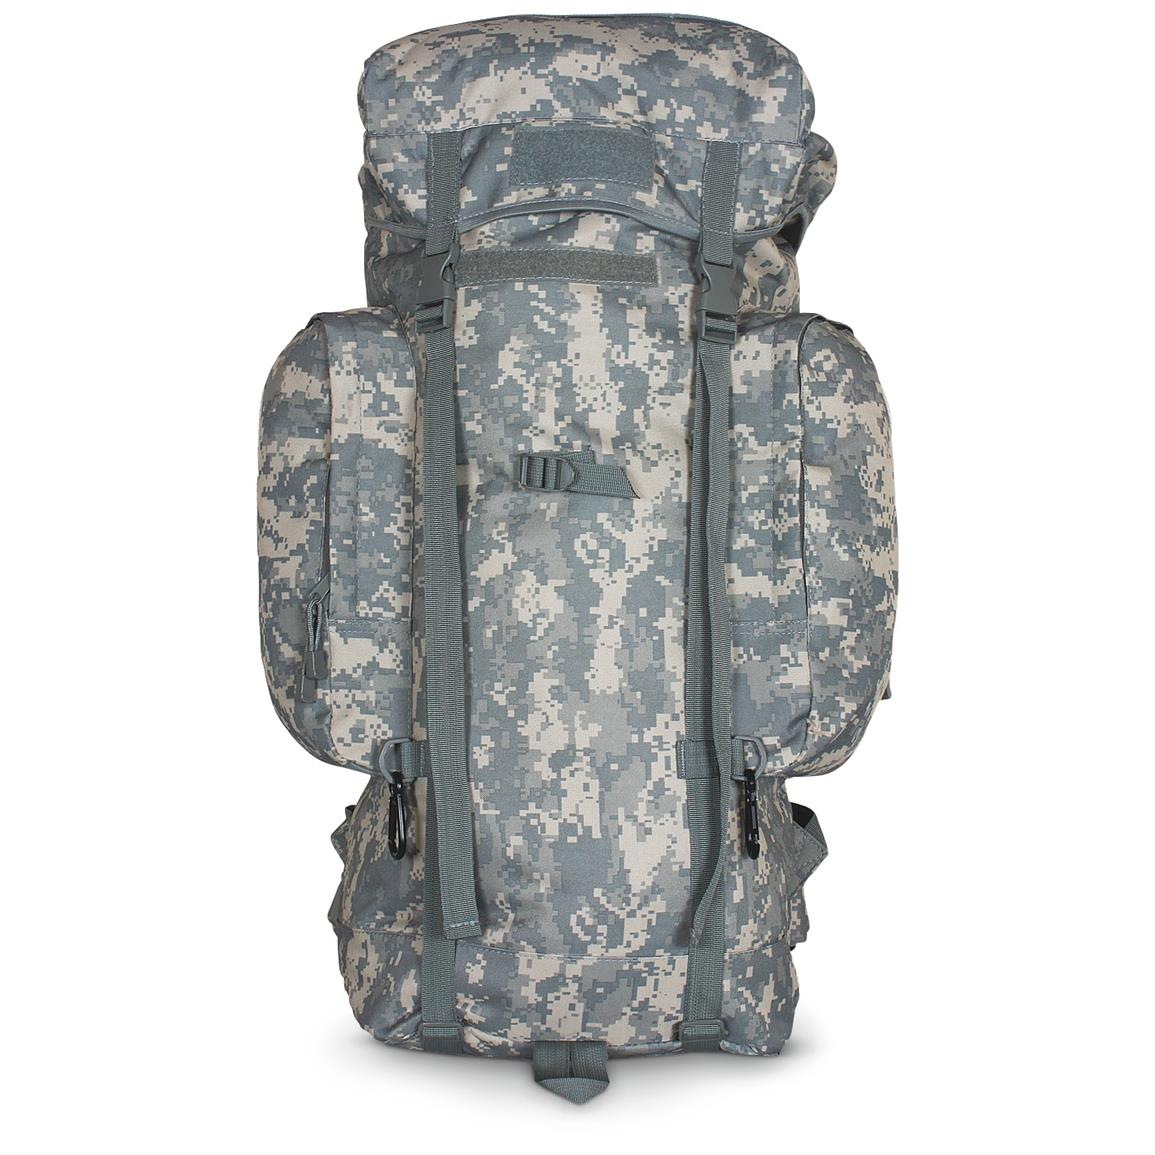 Fox Tactical Rio Grande Pack, 45 liters, Army Digital